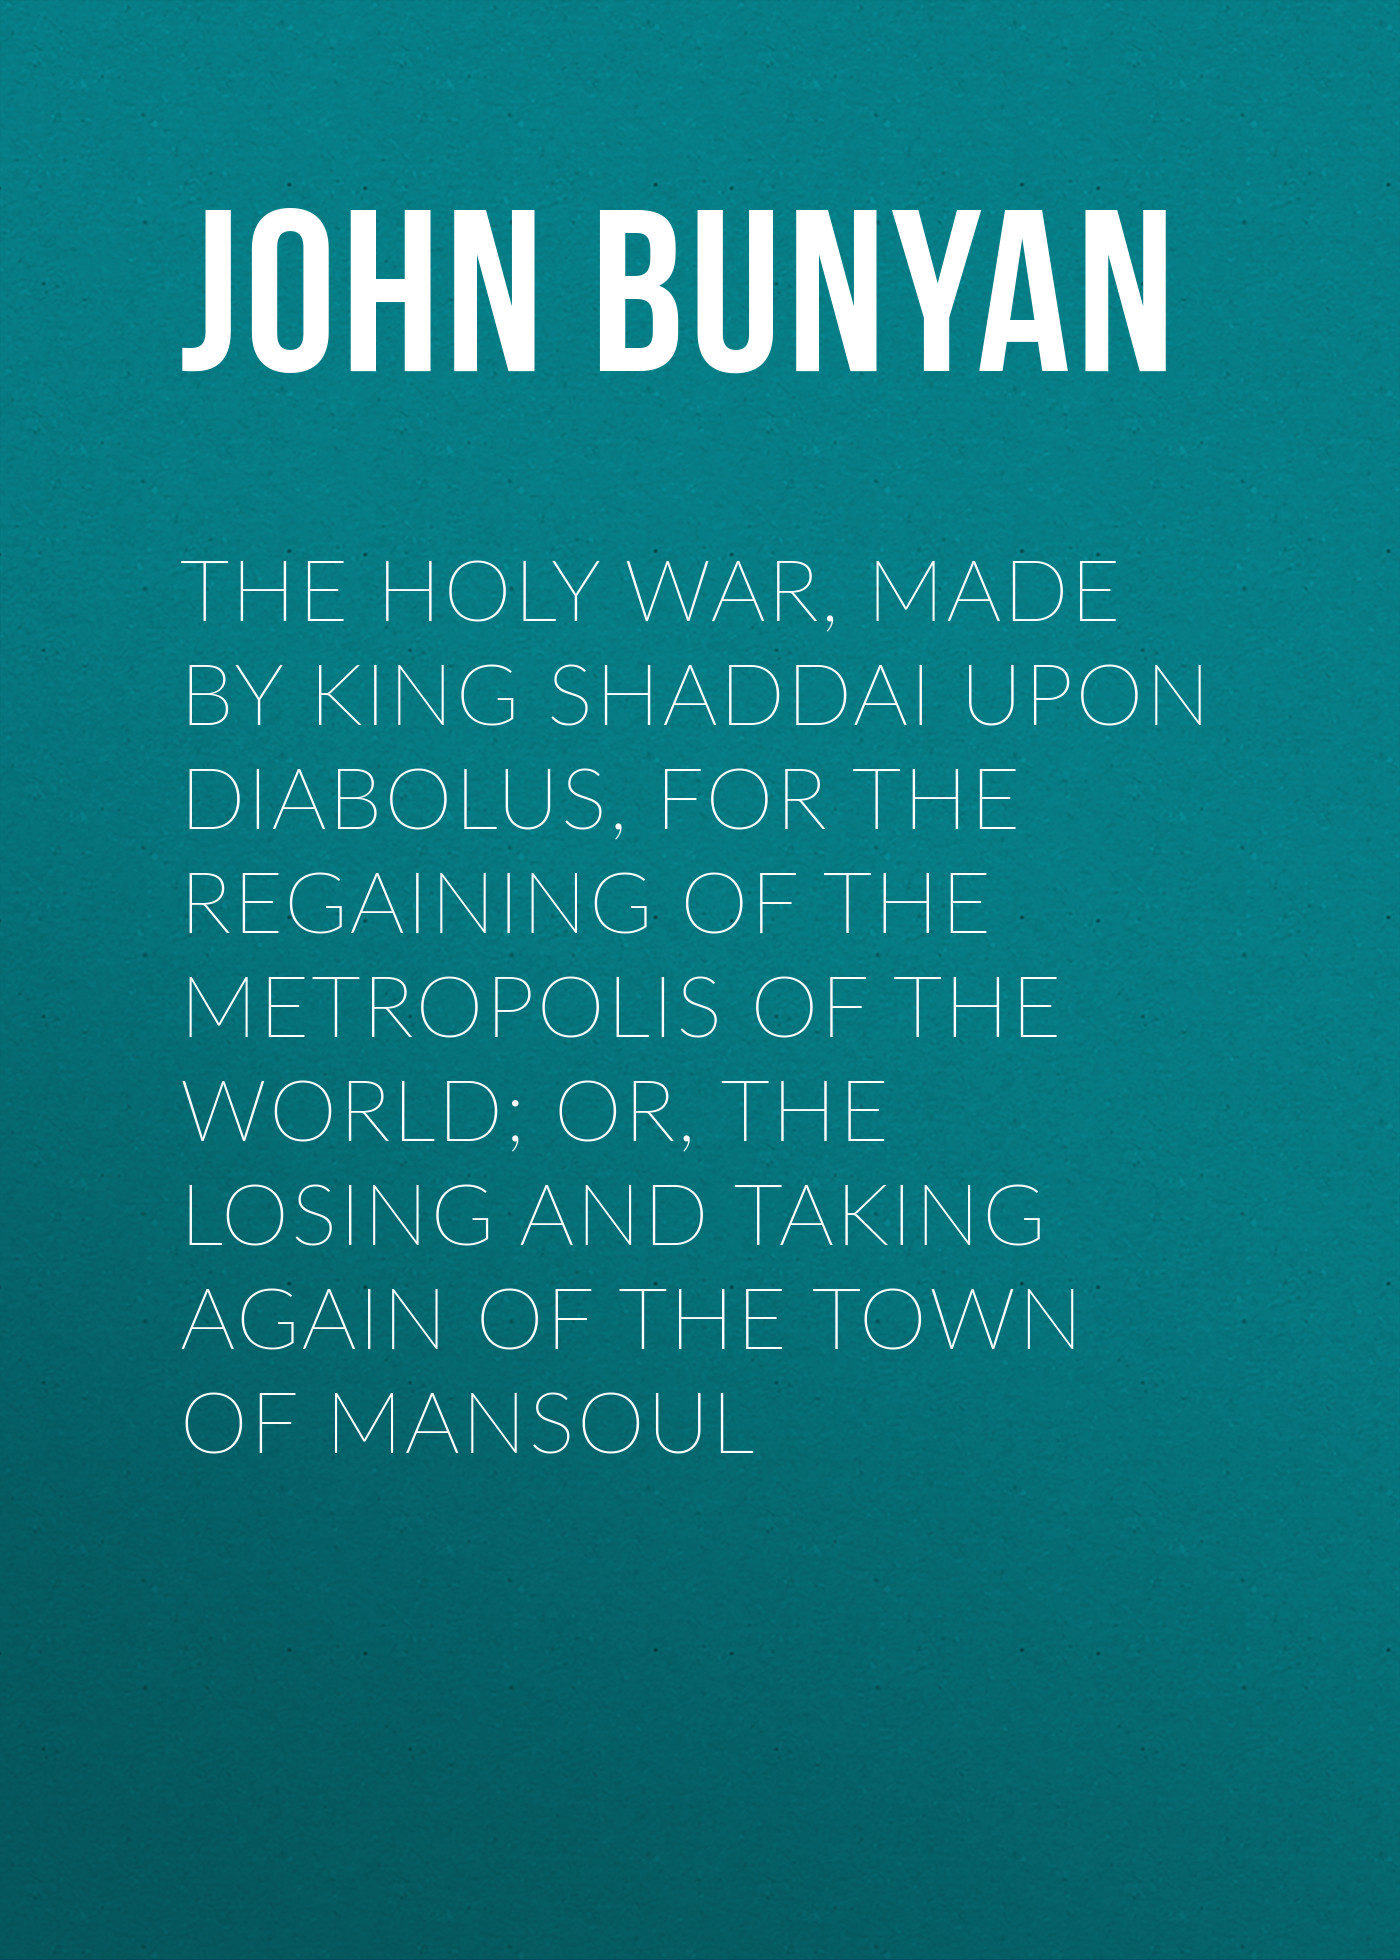 John Bunyan The Holy War, Made by King Shaddai Upon Diabolus, for the Regaining of the Metropolis of the World; Or, The Losing and Taking Again of the Town of Mansoul сумка printio i'm the king of the world